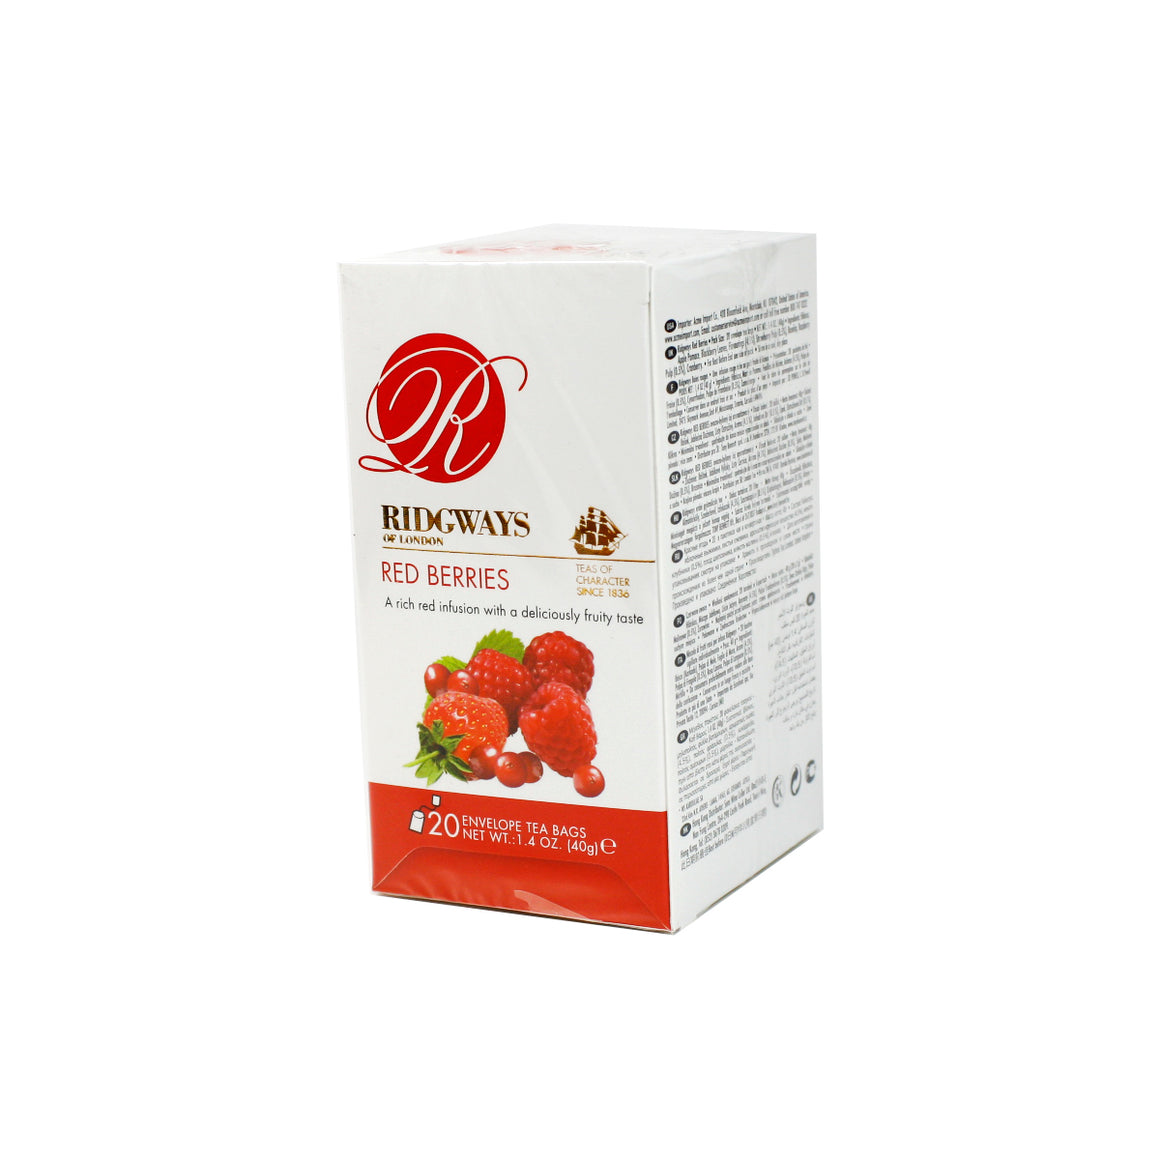 Red Berries Tea bags